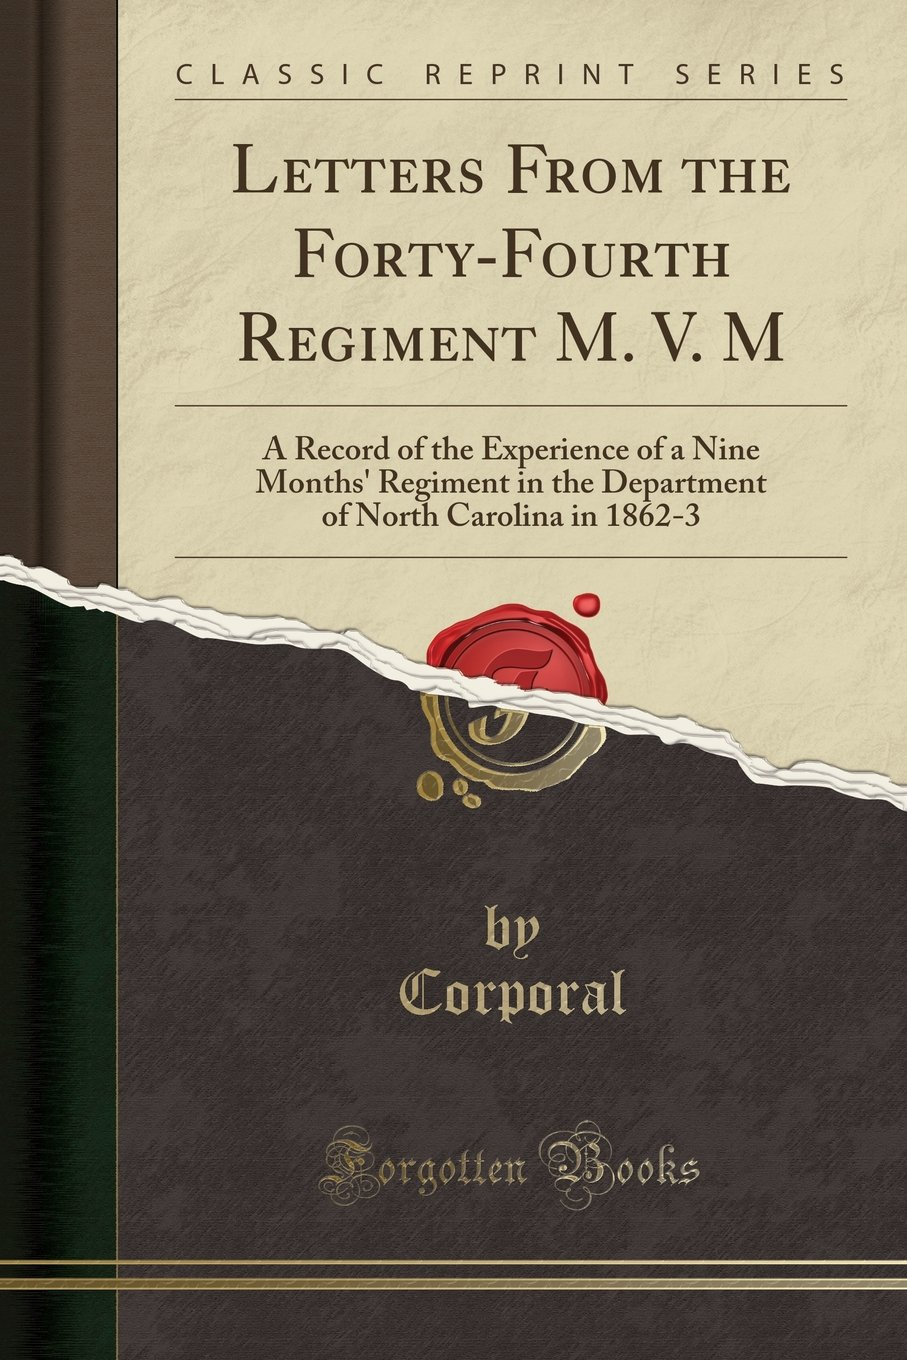 Download Letters From the Forty-Fourth Regiment M. V. M: A Record of the Experience of a Nine Months' Regiment in the Department of North Carolina in 1862-3 (Classic Reprint) ebook